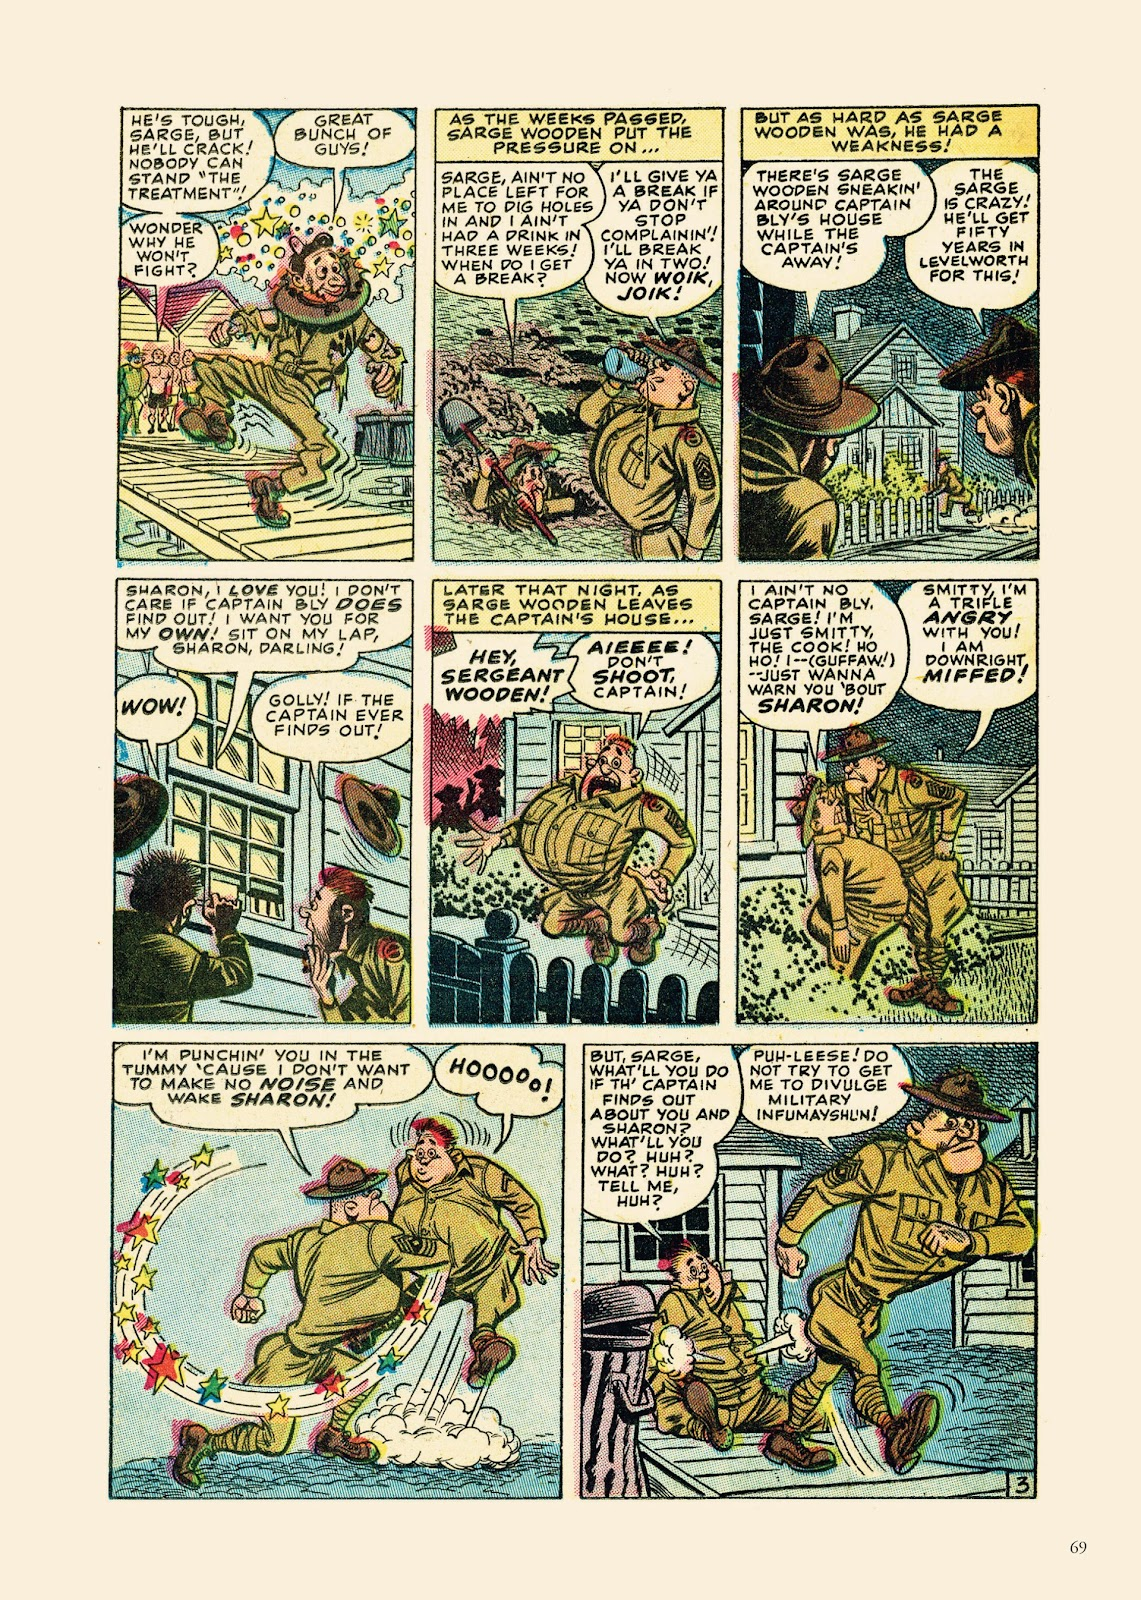 Read online Sincerest Form of Parody: The Best 1950s MAD-Inspired Satirical Comics comic -  Issue # TPB (Part 1) - 70